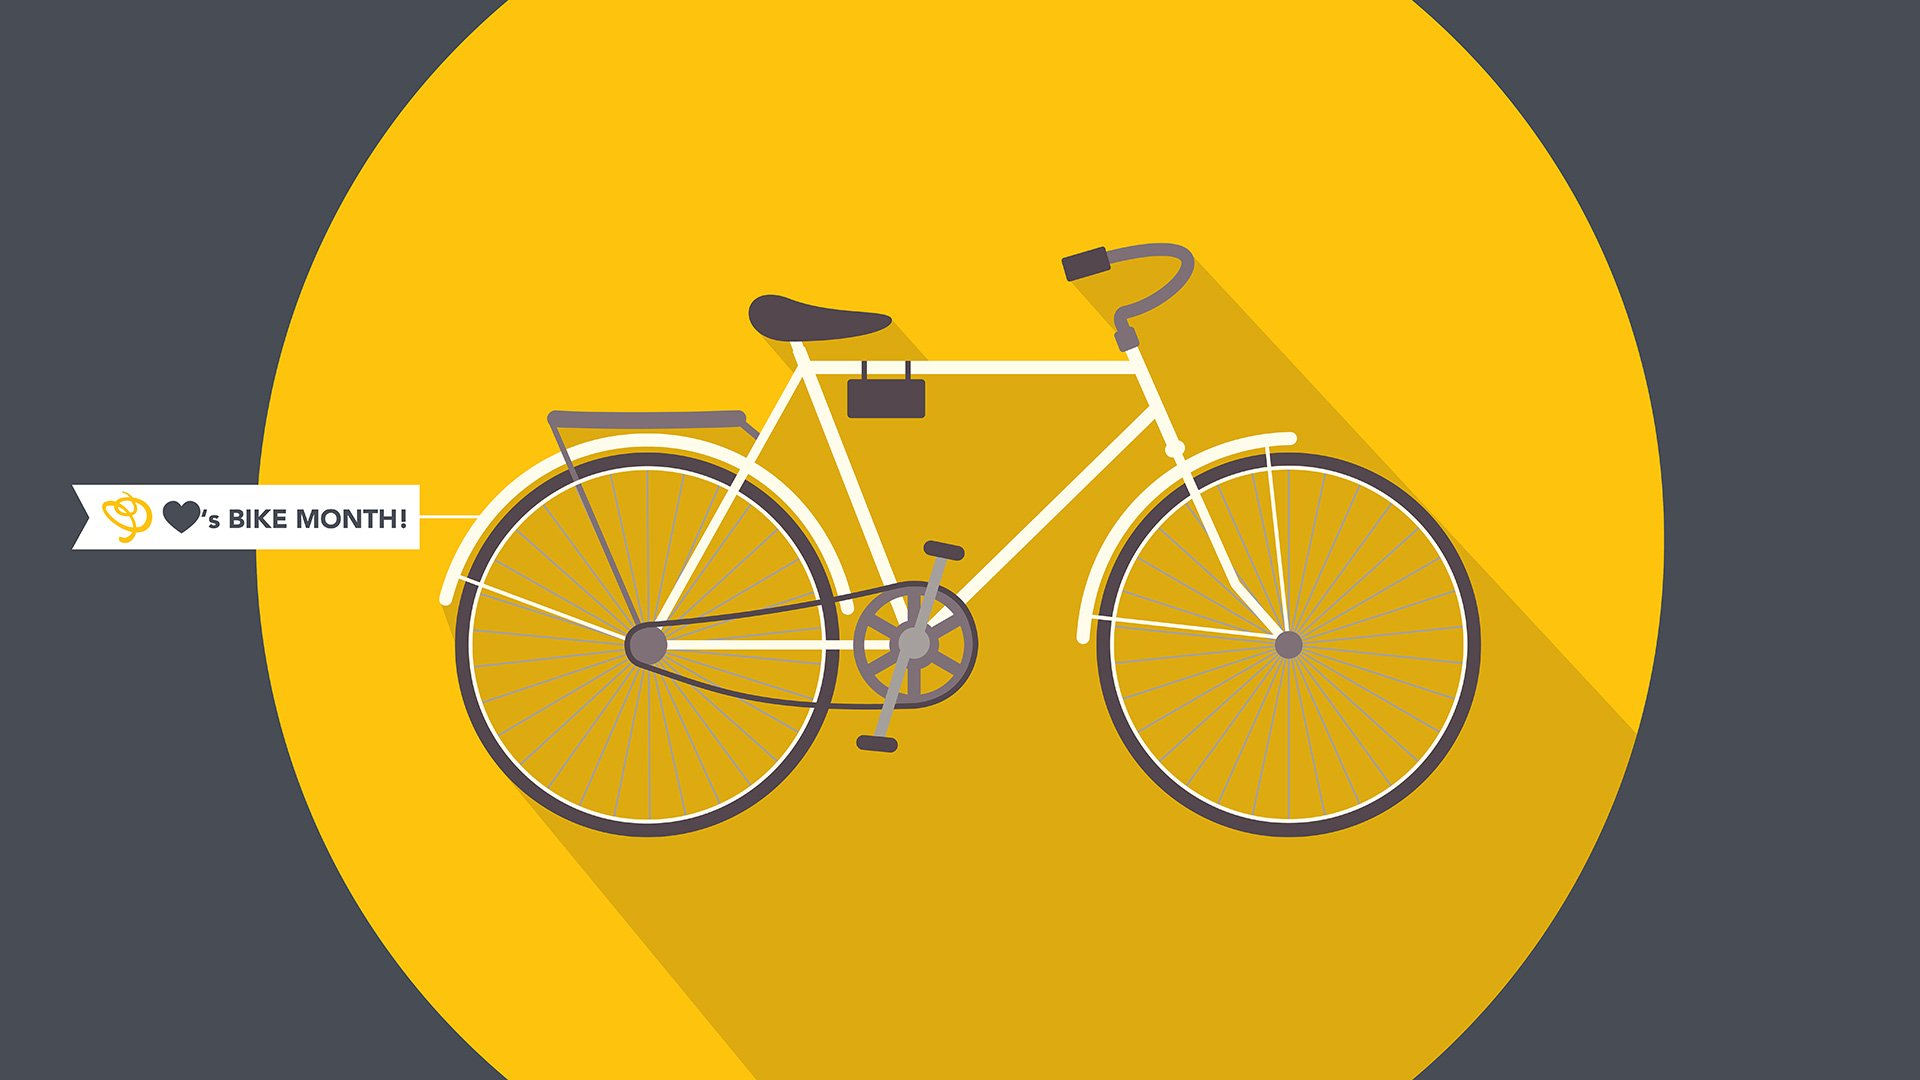 Bike Week / Month Graphic, Bicycle with MPS flag